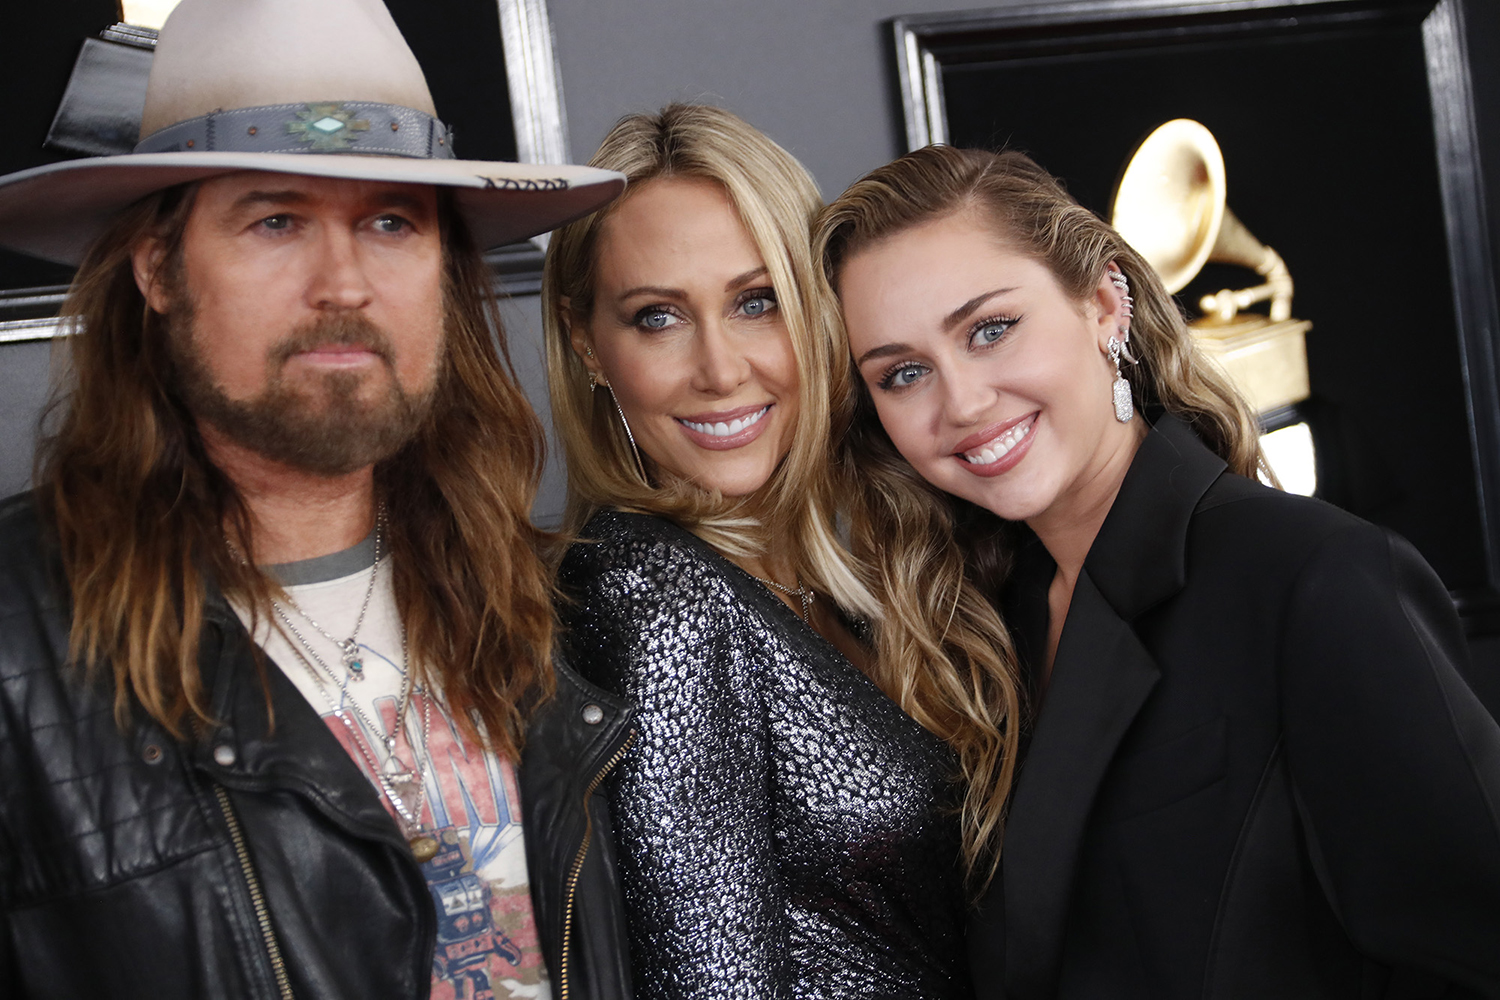 From left, Billy Ray Cyrus, Tish Cyrus, and Miley Cyrus arrive at the 61st Grammy Awards at Staples Center in Los Angeles on Sunday, Feb. 10, 2019. (Marcus Yam/Los Angeles Times/TNS)